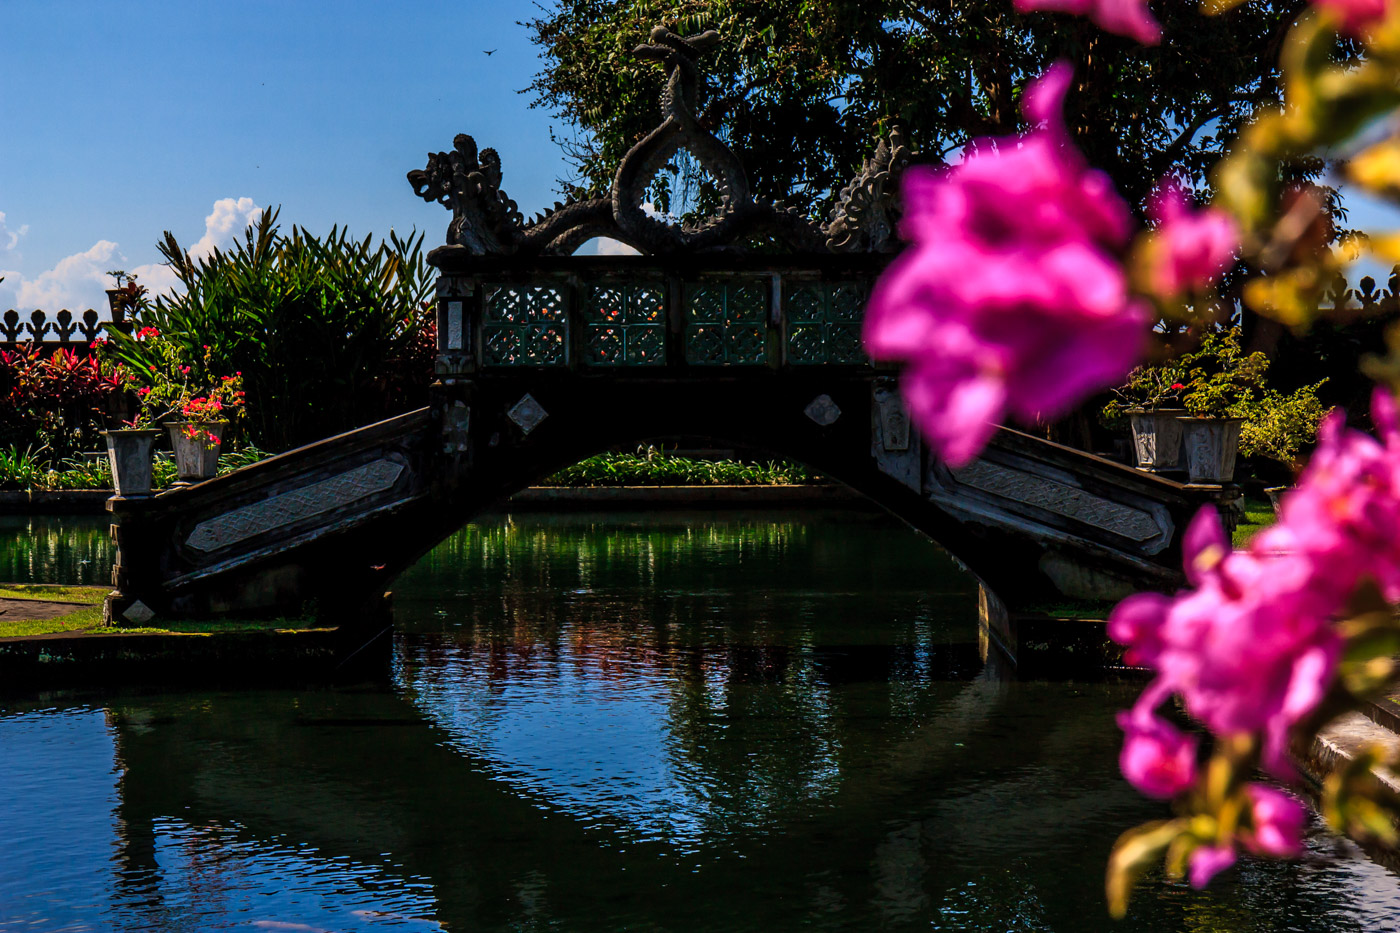 Flowers and bridge.